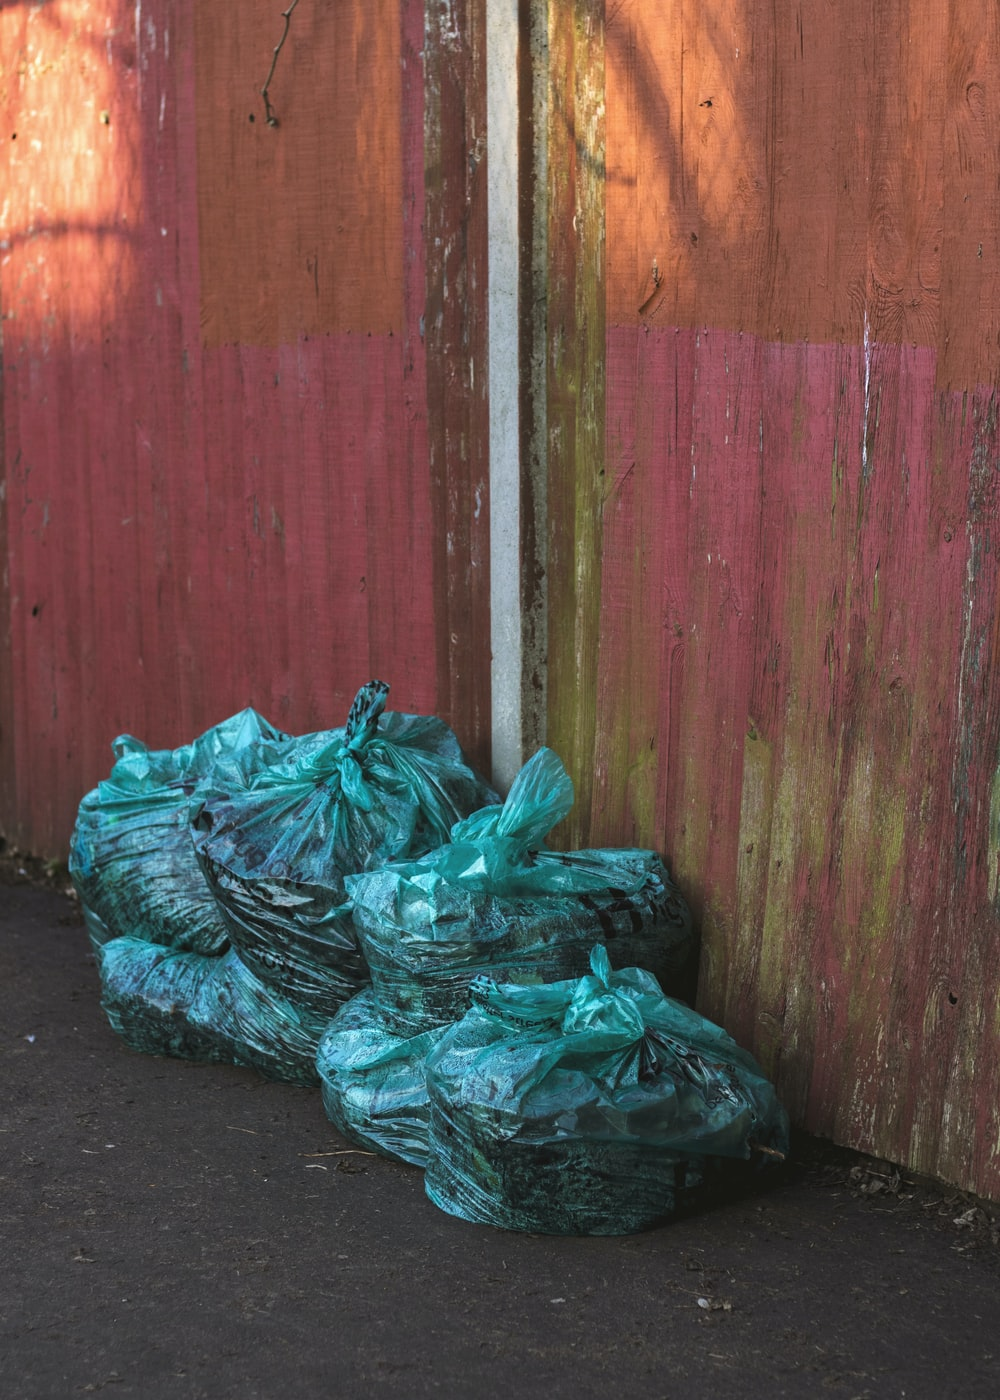 green plastic bags near wooden wall